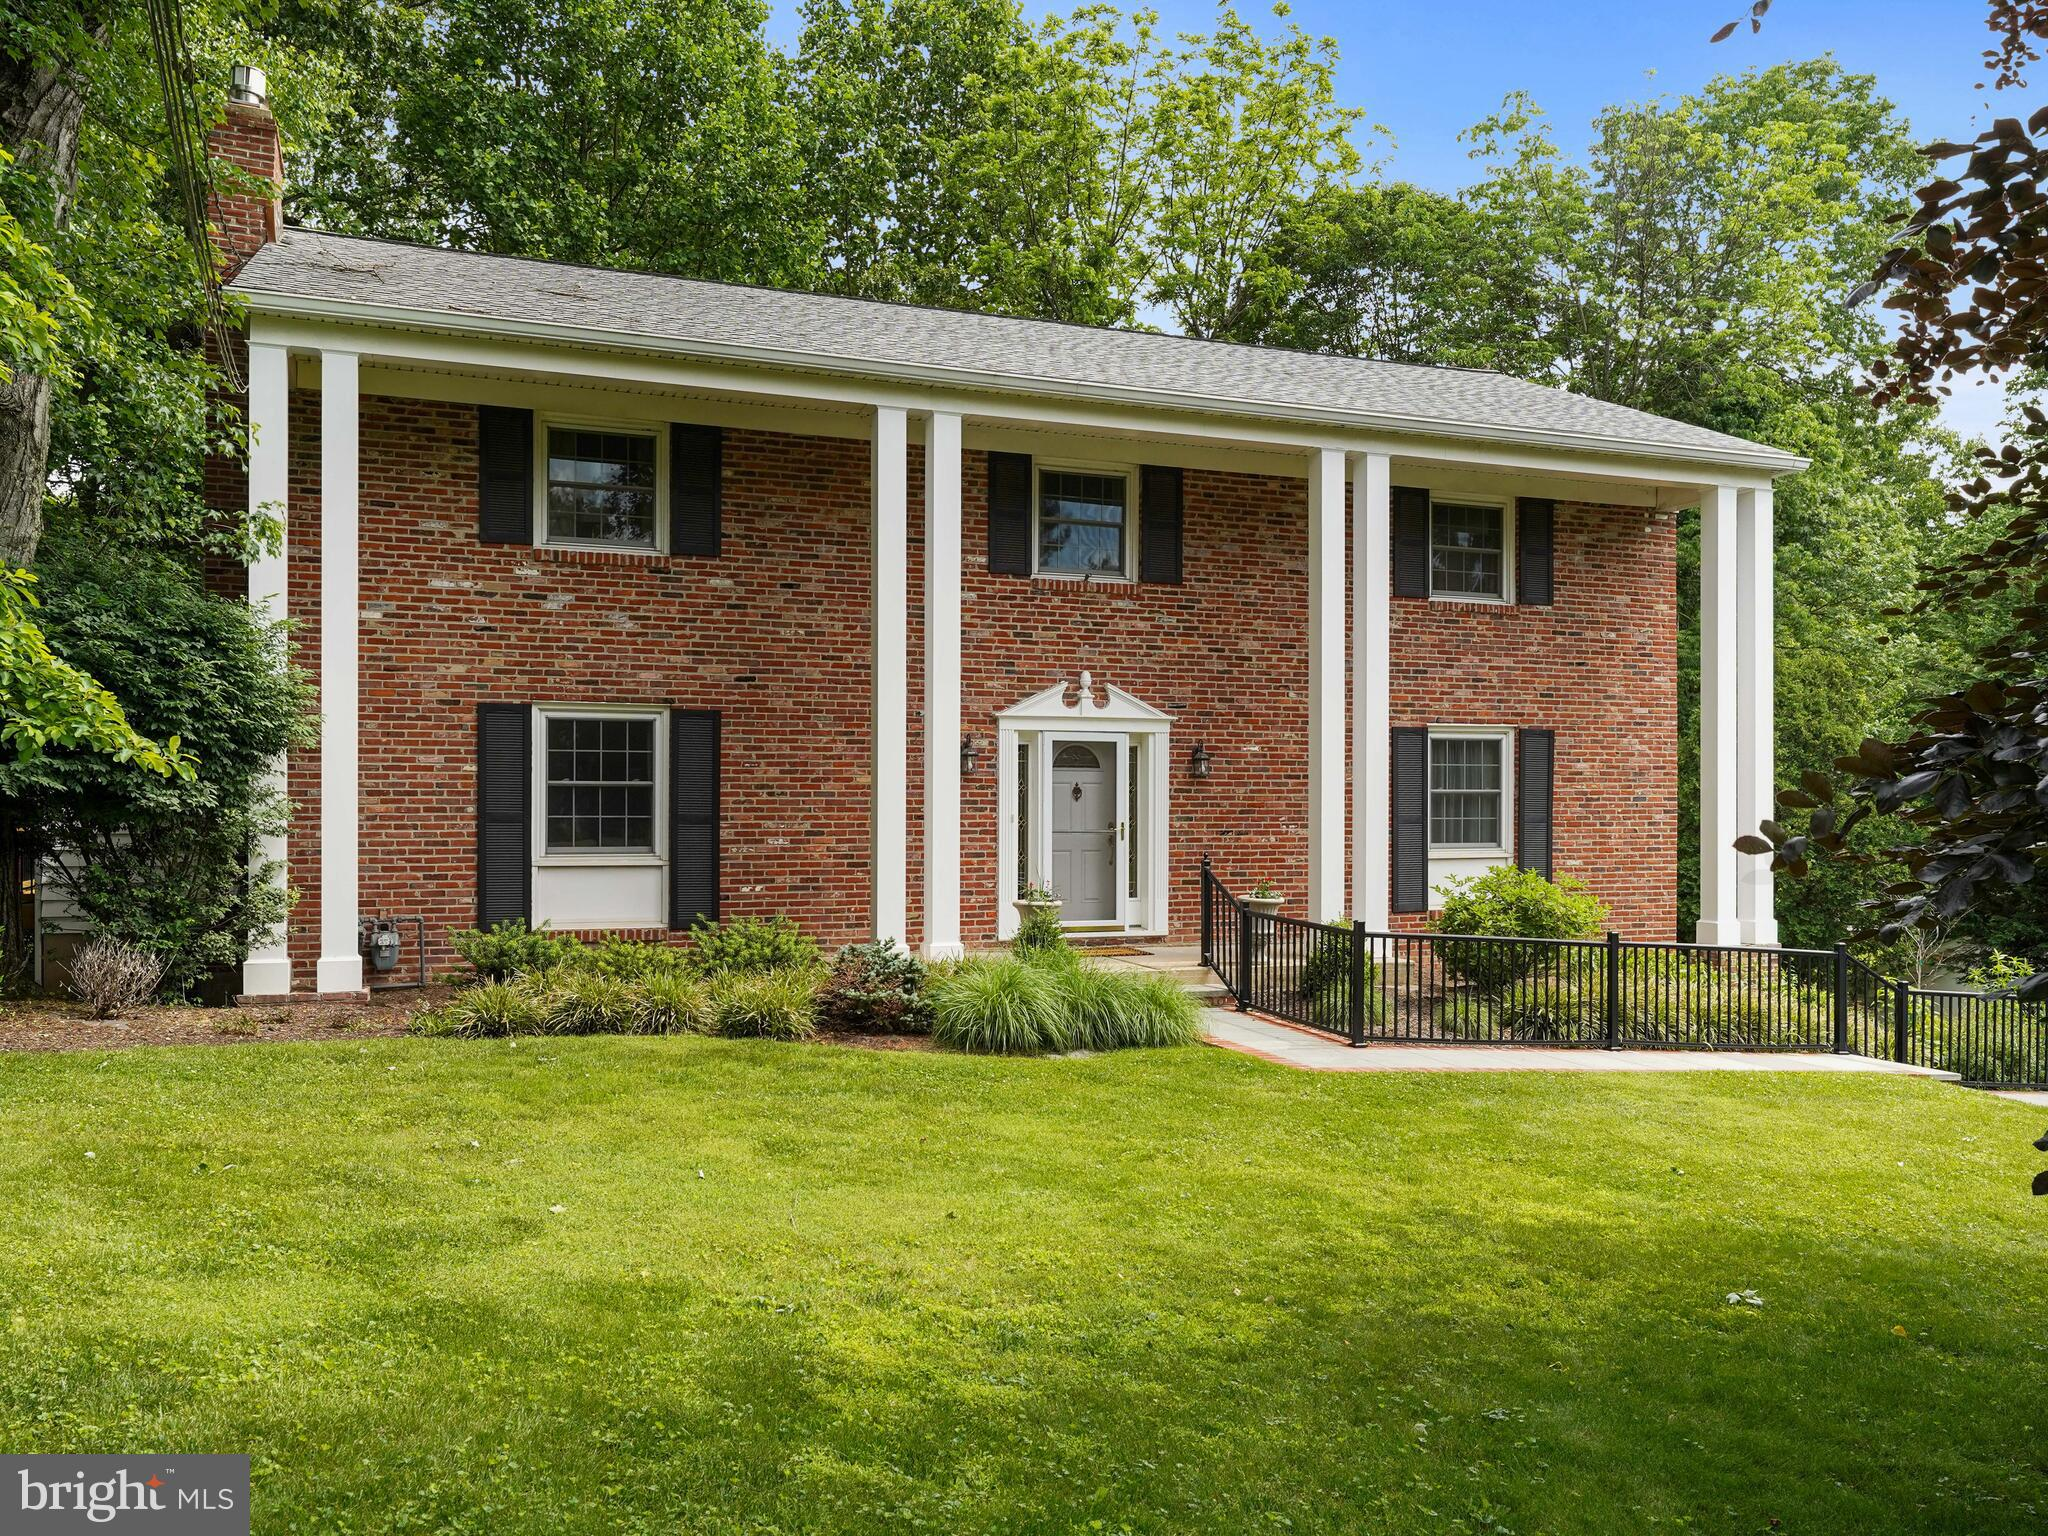 This Devon Downs Brick colonial is unique for the neighborhood. It has been remodeled and very well maintained. Newer Kitchen and baths and fresh paint allow you to move in and unpack. The family room features a fireplace with built-ins on either side and a pass-thru to the kitchen. There are hardwoods throughout the house. The main level flows well from the Gracious Foyer to the large living room into dining room and then into the kitchen and family room further flowing back into the two-story foyer. This home has a full finished walk-out lower level adding great living space. This is a unique feature for this neighborhood. The recently rebuilt wrap-around deck overlooks the woods full of wildlife.  .  The owner loves the privacy from the wrap-around deck which was recently rebuilt. It is located in the award-winning Tredyffrin/Easttown school district. Minutes from the R-5 train line and Berwyn shopping district